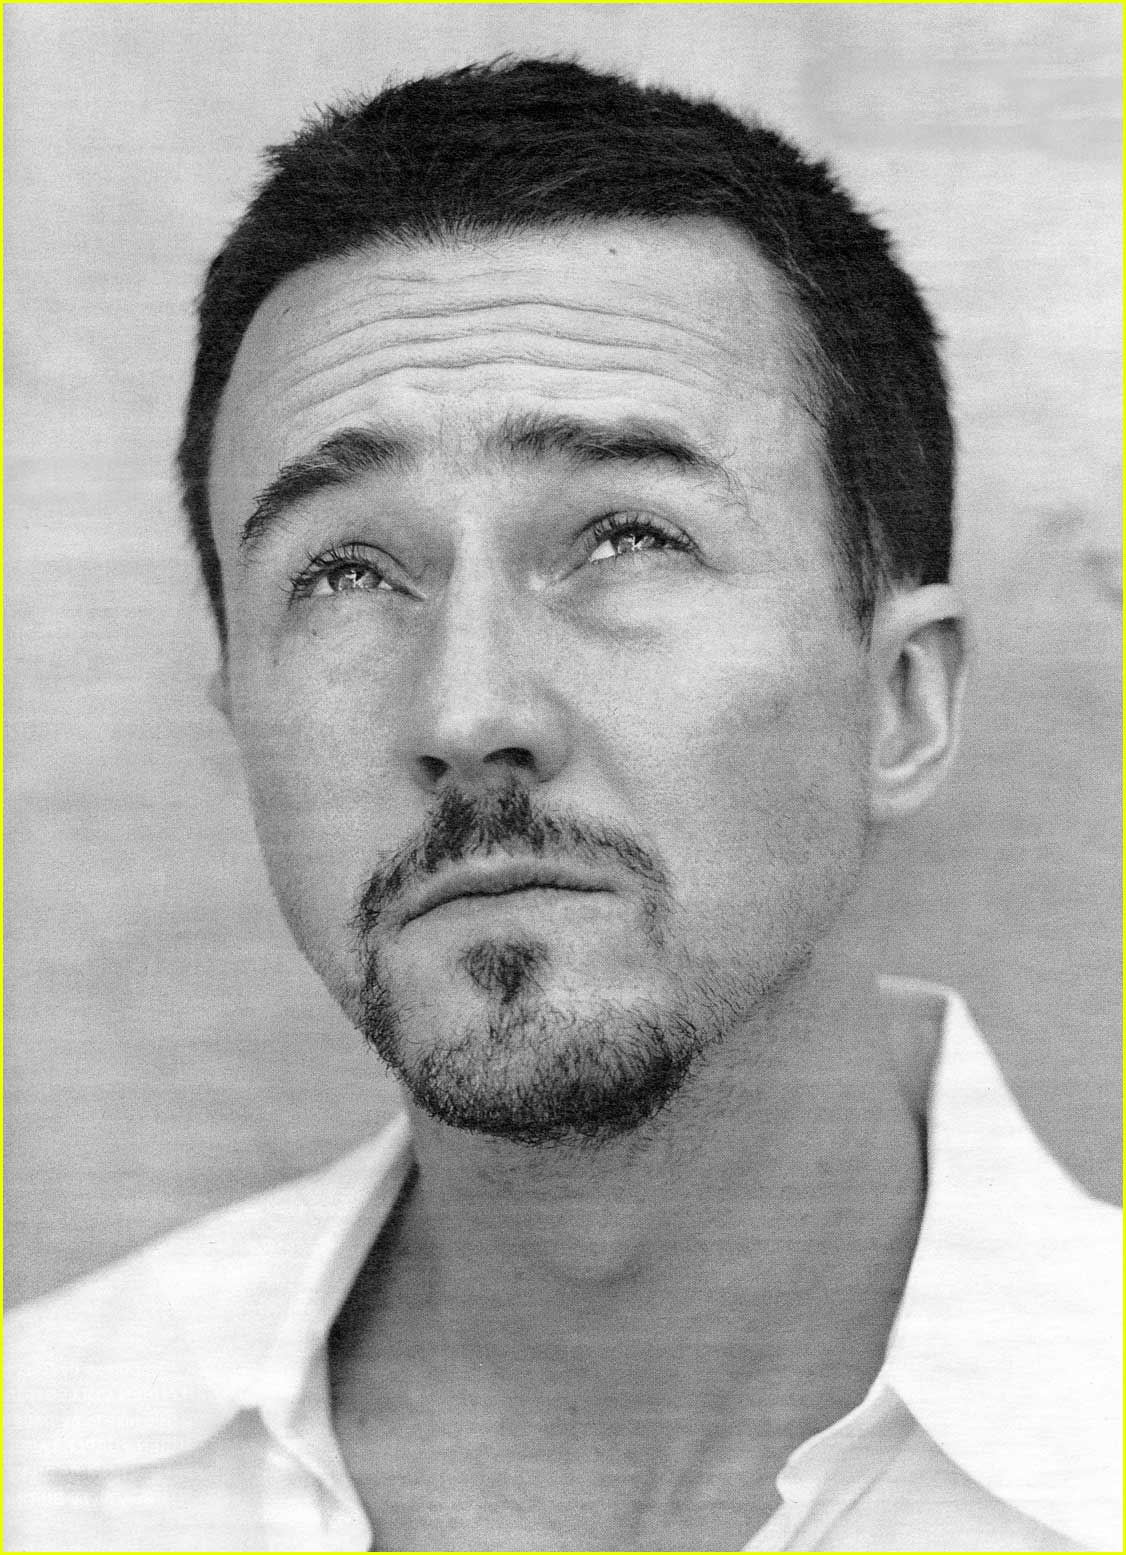 edward norton bioedward norton movies, edward norton hulk, edward norton imdb, edward norton fight club, edward norton wife, edward norton net worth, edward norton age, edward norton height, edward norton commercial, edward norton modern family, edward norton avengers, edward norton 2015, edward norton oscar, edward norton courtney love, edward norton robert de niro, edward norton stefon, edward norton married, edward norton interview, edward norton bio